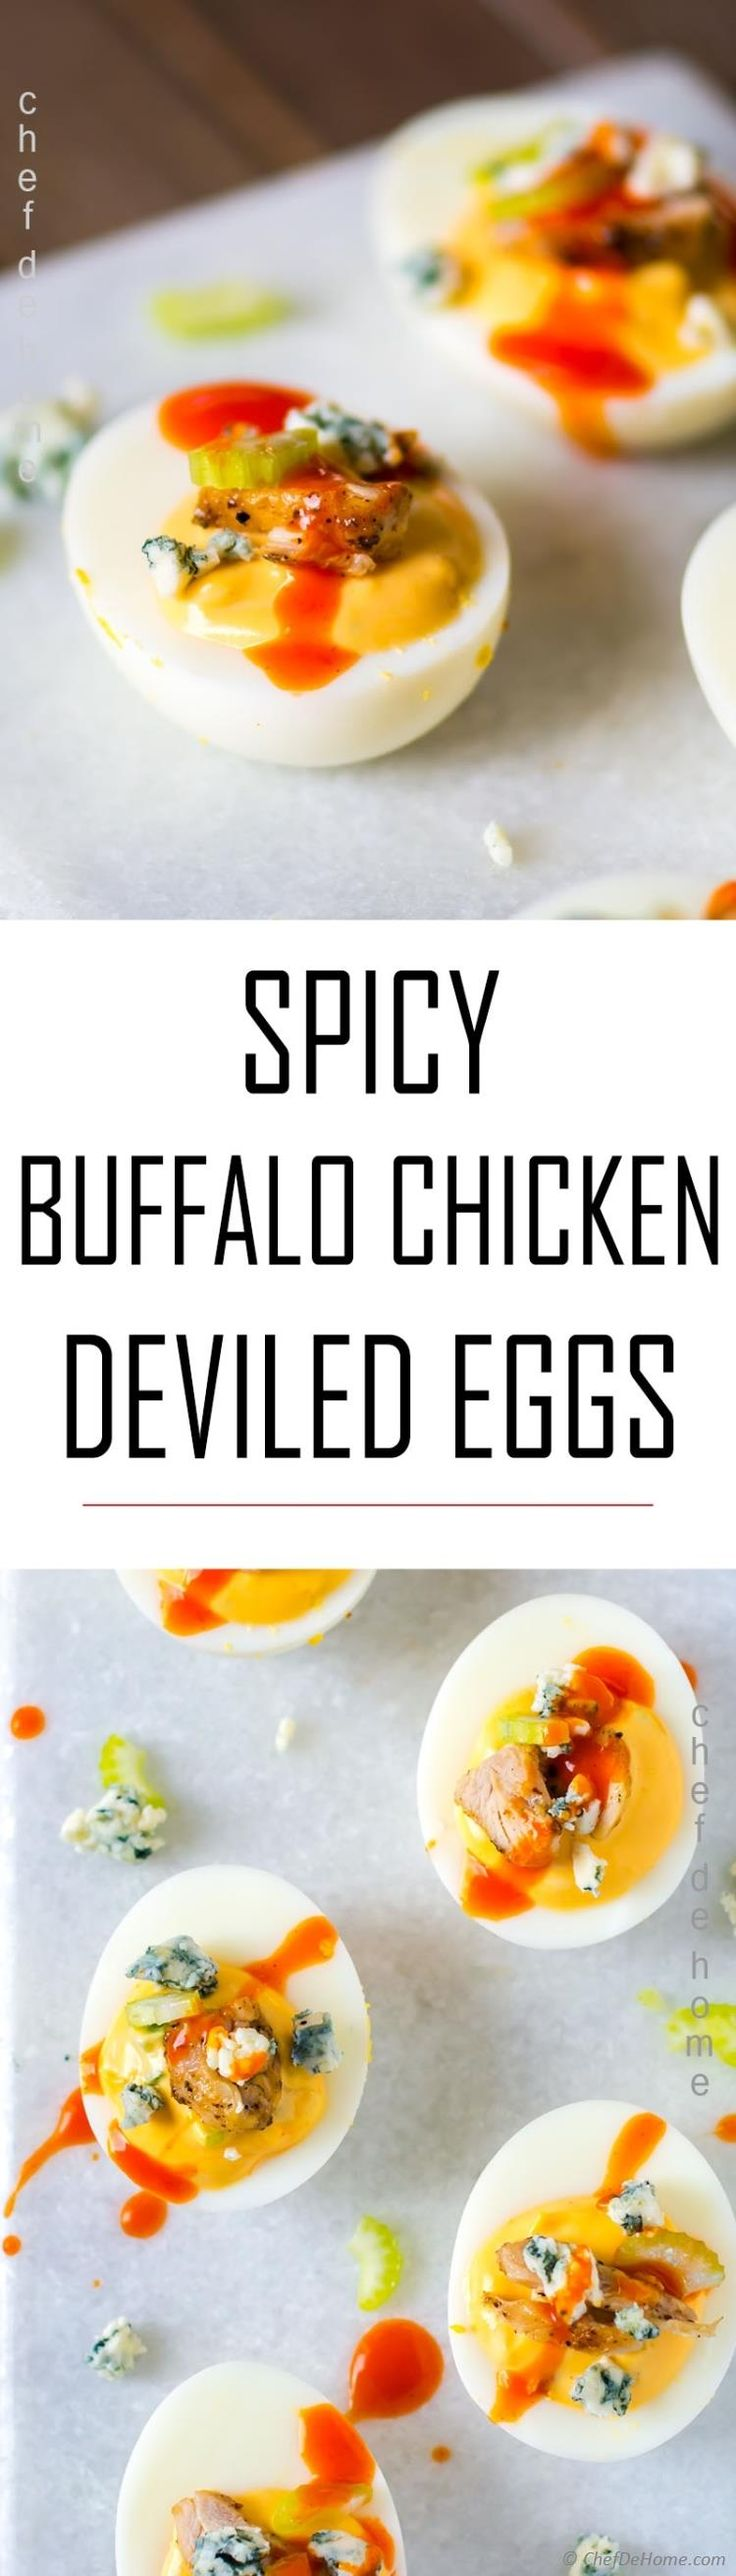 Buffalo Chicken Spicy Deviled Eggs, all flavors of buffalo chicken wings, moist chicken, hot sauce, crunchy celery, and creamy blue cheese.. topped on boiled eggs.   Just 5 ingredients, so much flavor on top of hard boiled eggs, these deviled eggs are the best deviled egg recipe, ever!